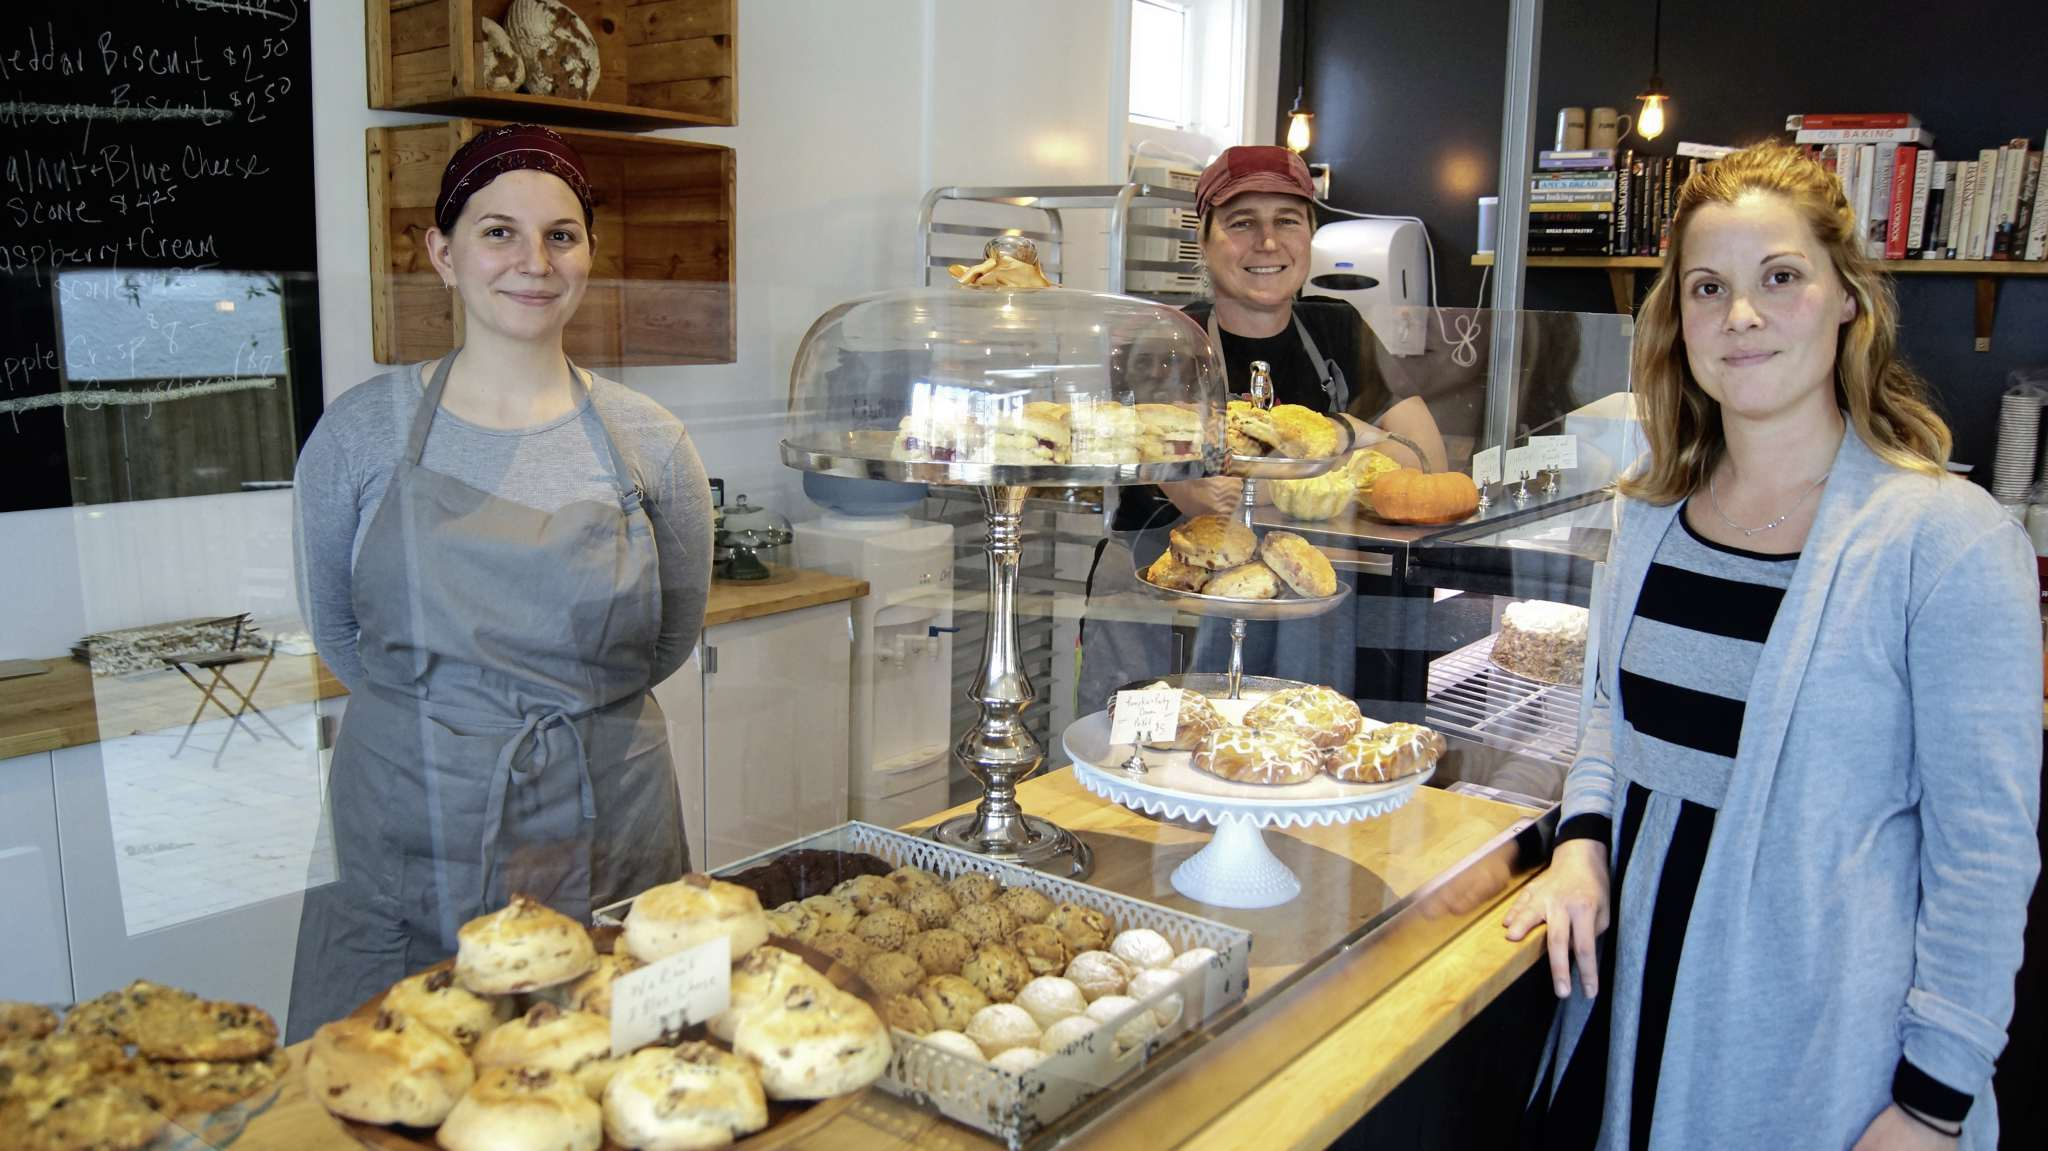 From left: Artemis Schroedter, front of house; Tammy Klos, wholesale manager; and Suzanne Gessler, the owner and founder of The Pennyloaf Bakery (858 Corydon Ave.).